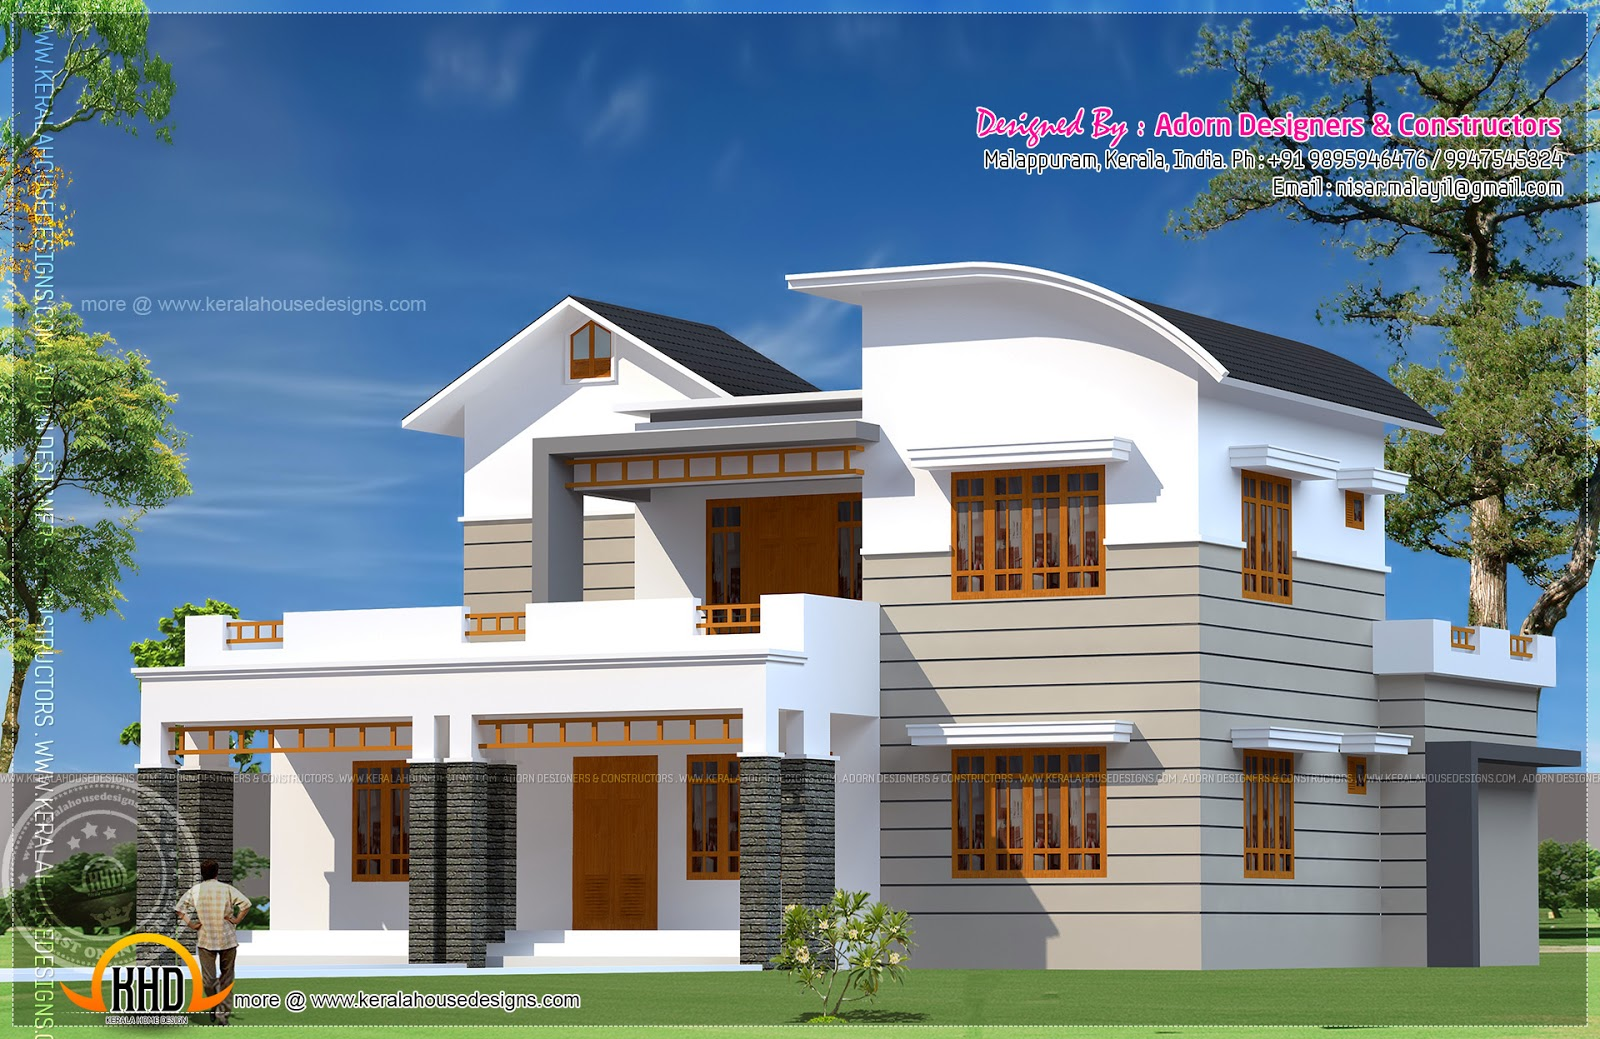 5 bedroom house exterior kerala home design and floor plans for 5 bedroom house interior design